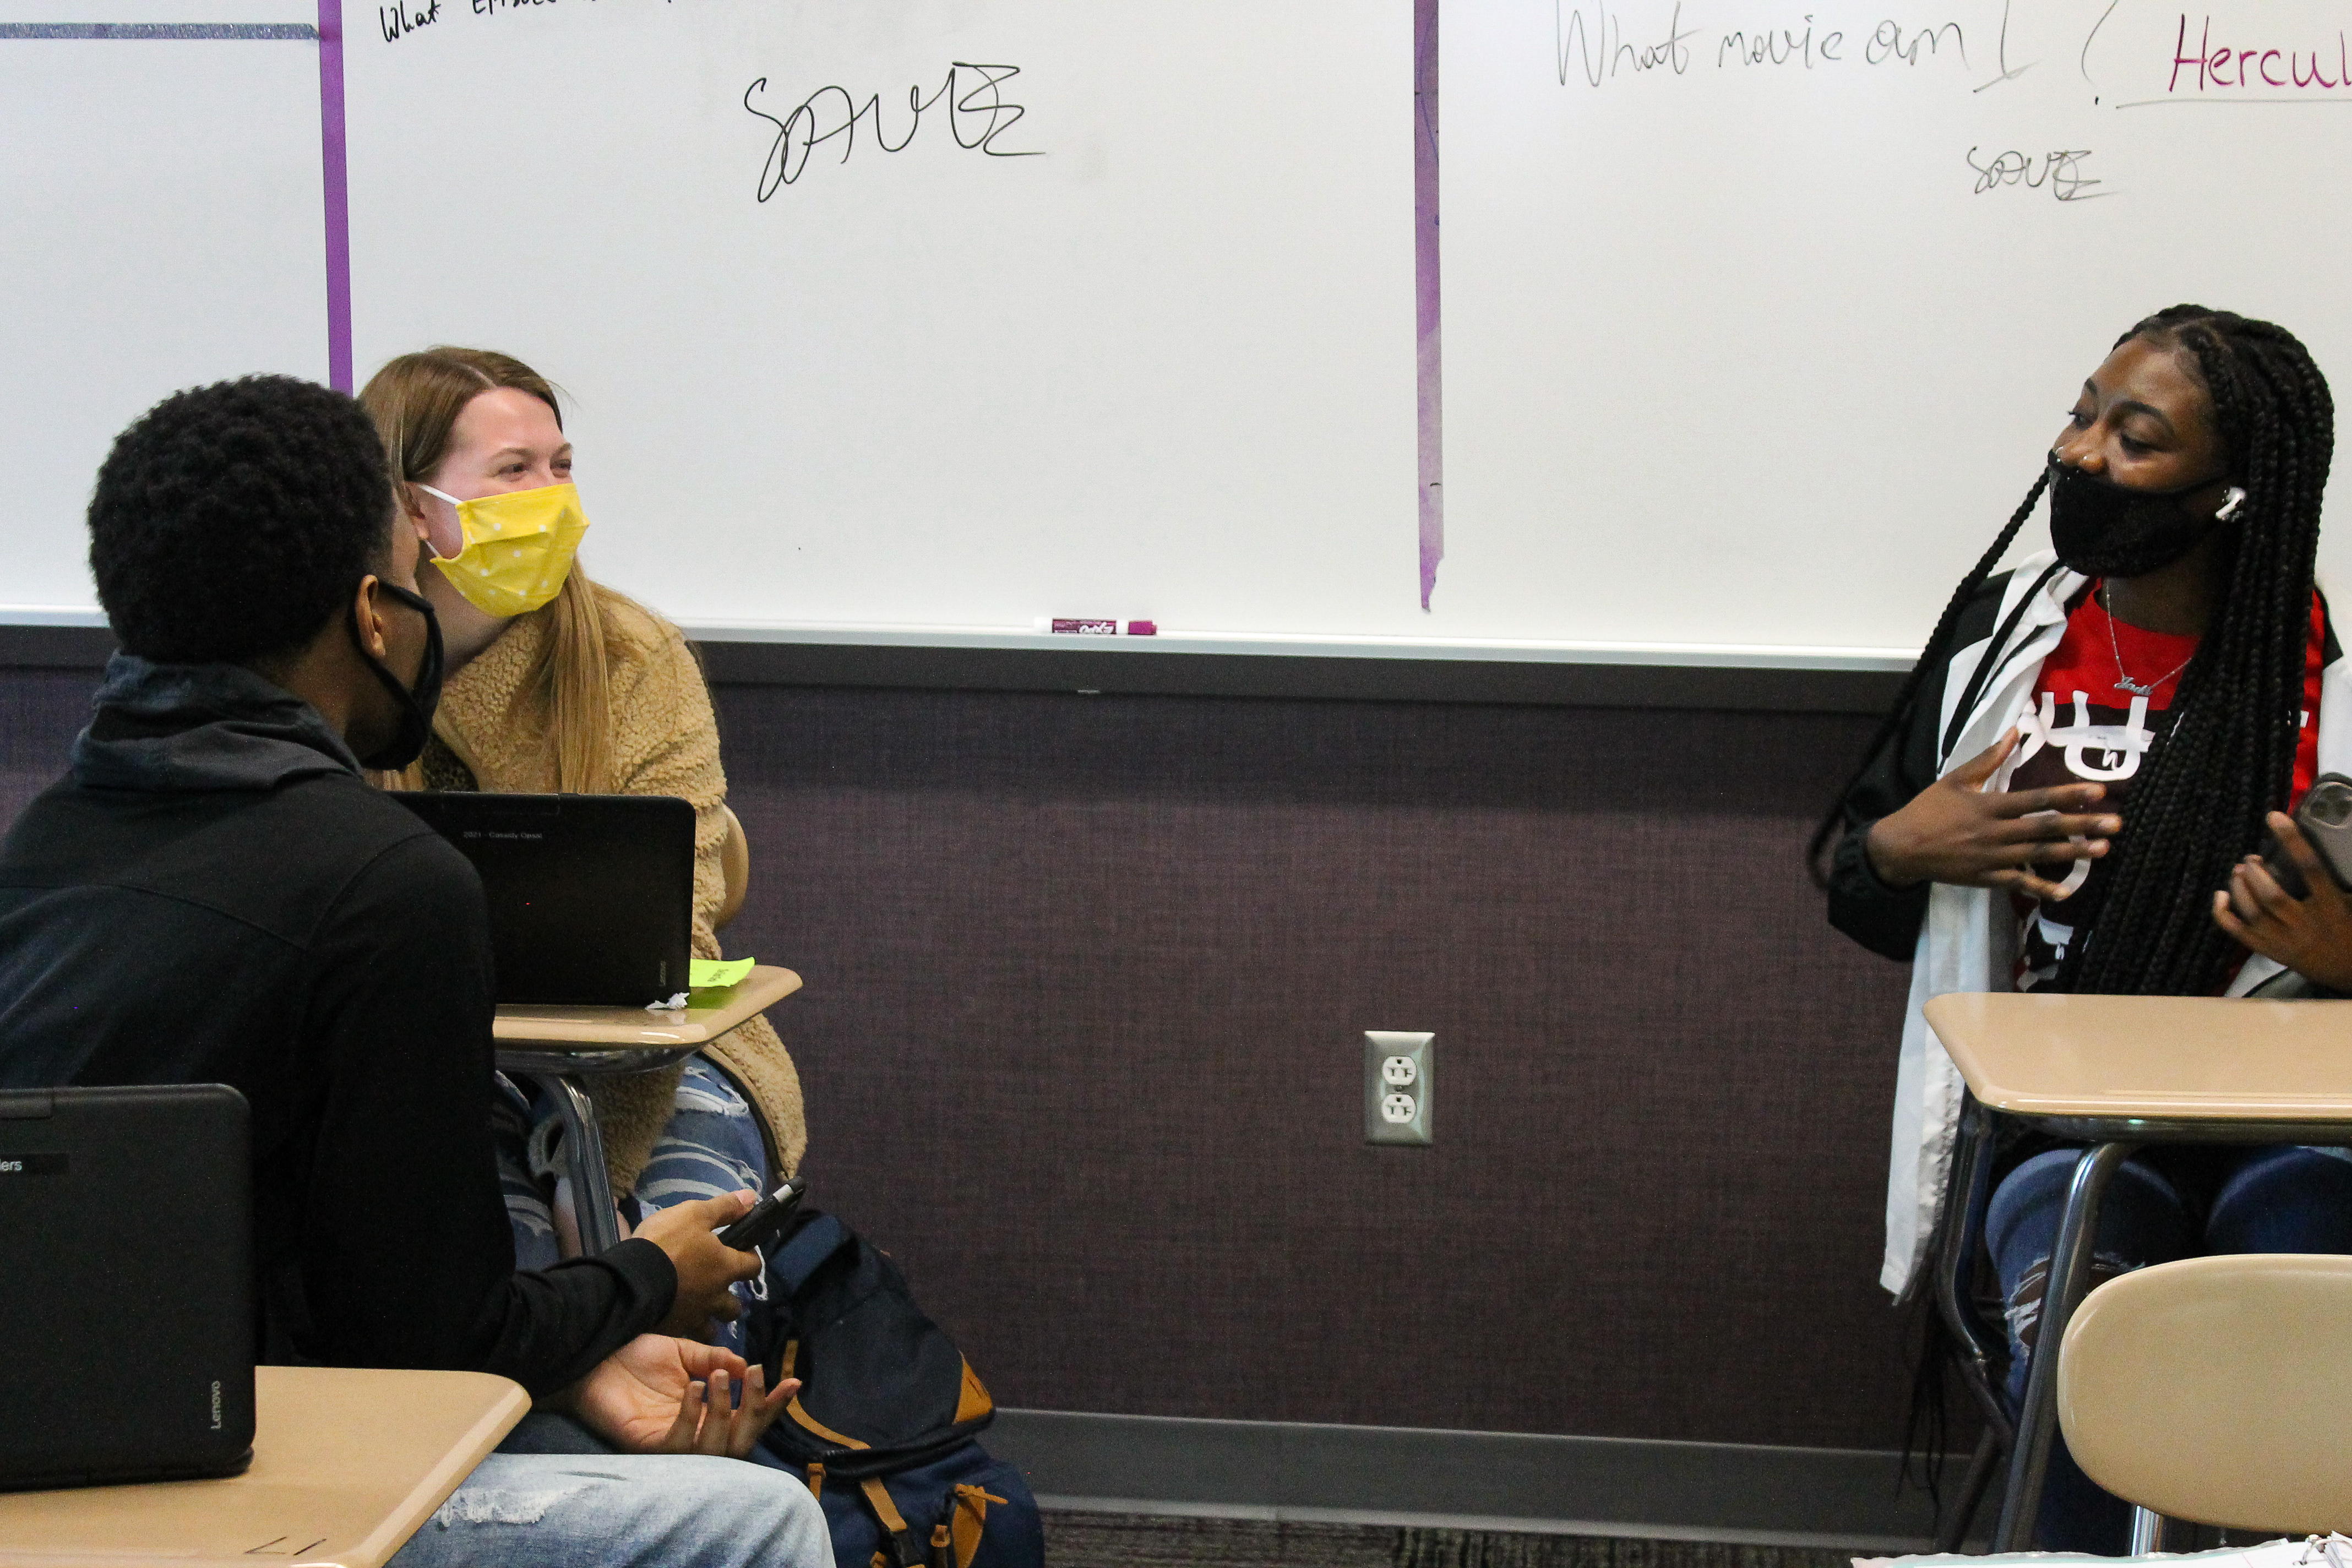 In front of a classroom white board, a student in a yellow sweater wearing a bright yellow mask sits next to a student in a black sweatshirt with a black mask. They are talking to another student seated in a desk several feet away with a red shirt and a black face mask holding her hand to her chest in the middle of speaking.